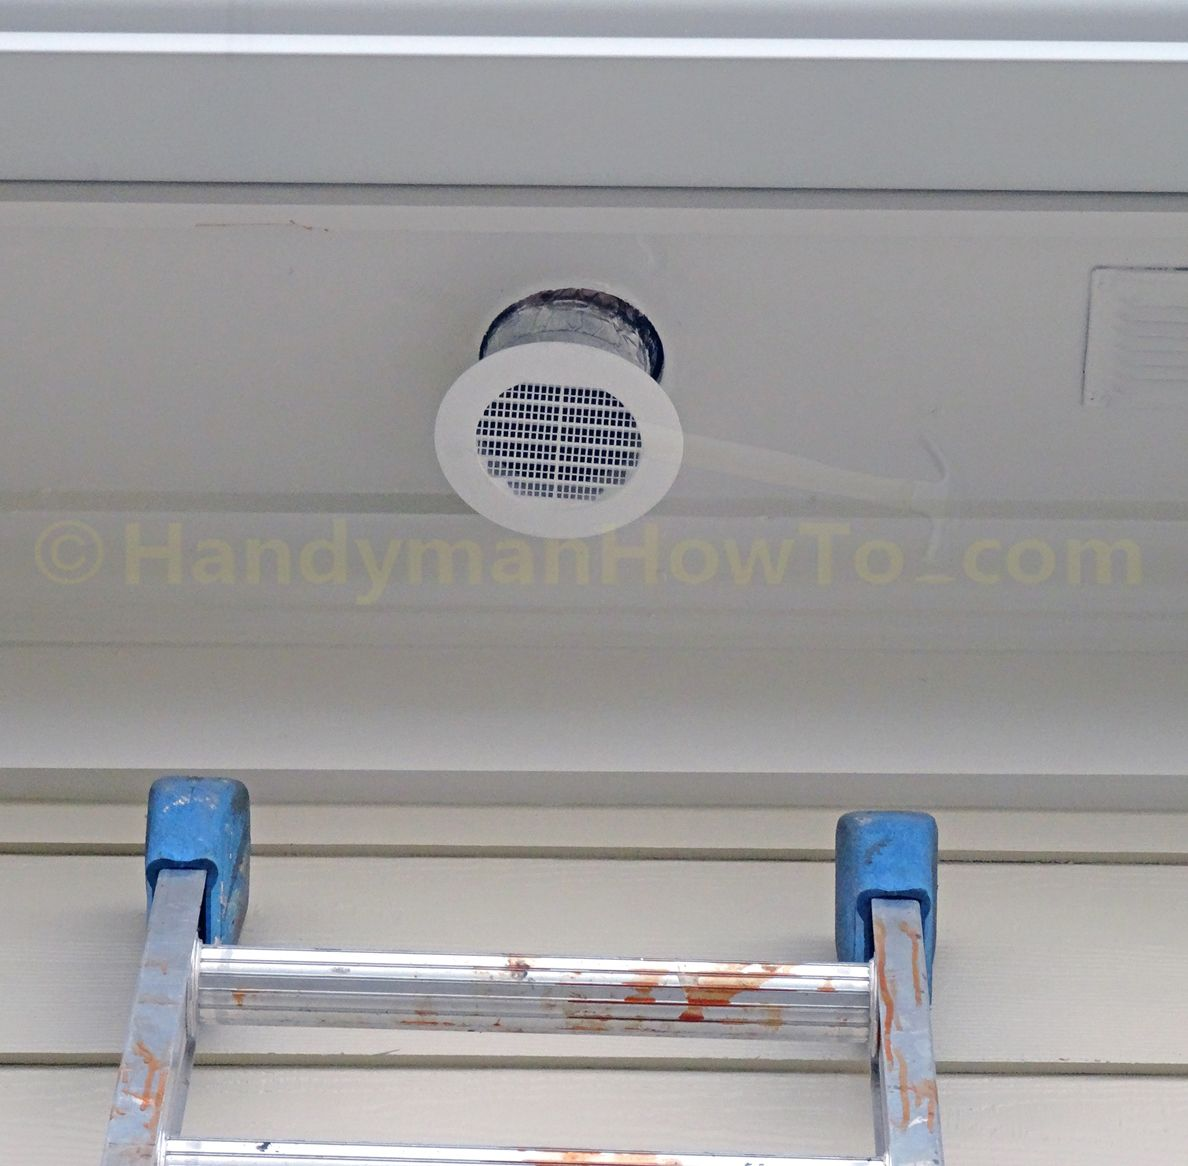 How To Install A Soffit Vent And Ductwork For A Bathroom Vent Fan. Mount The